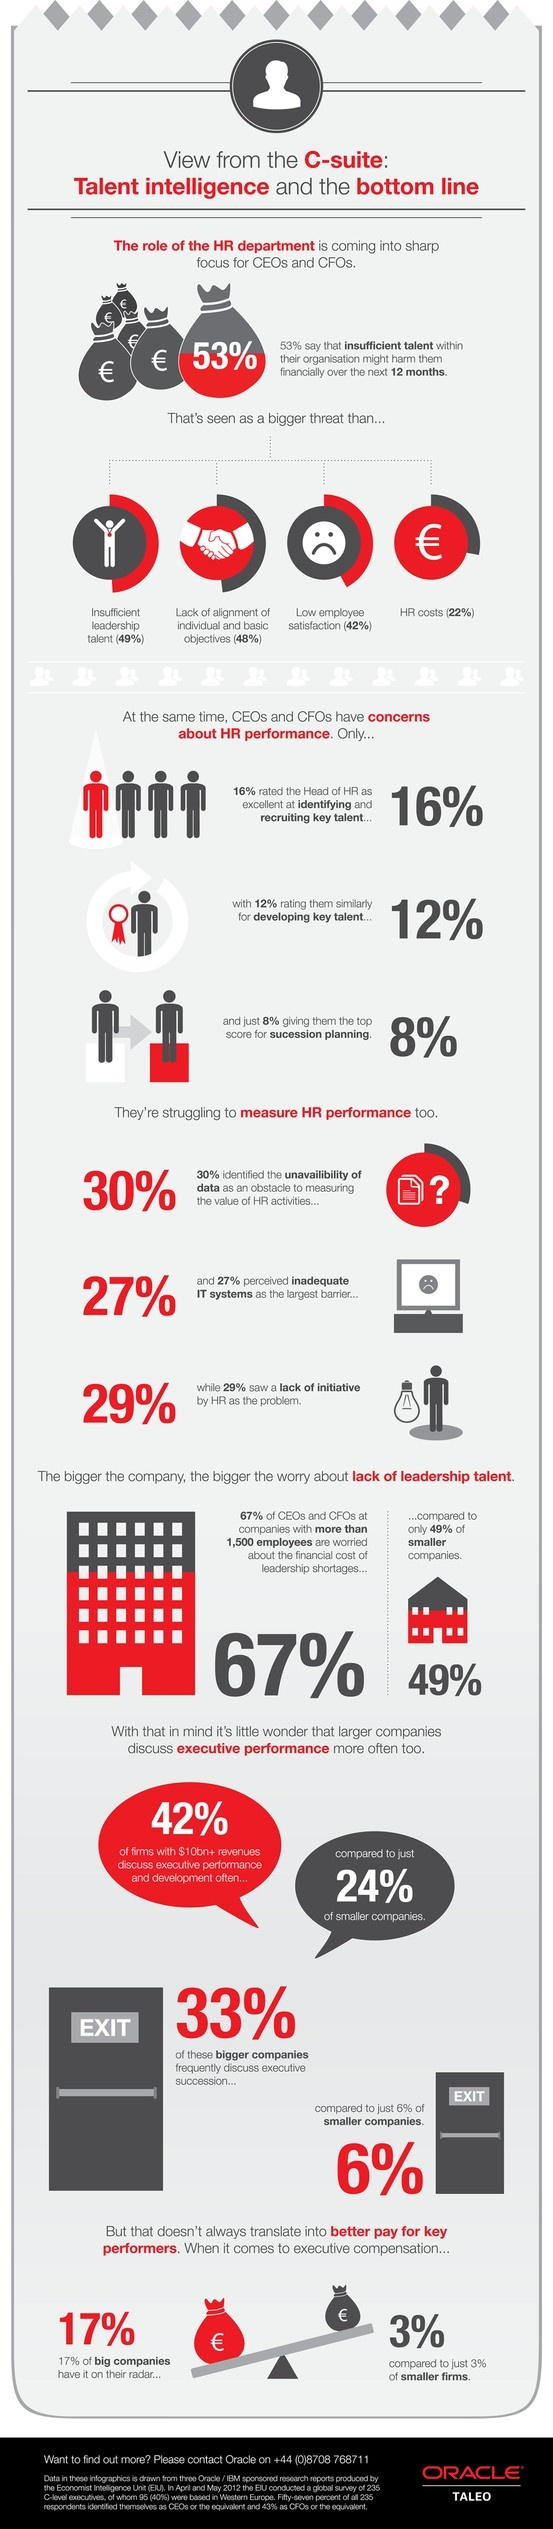 Talent Intelligence and the Bottom line by Oracle Corporation. The role of the HR department is becoming in sharp focus of the CEO and CFO. This infographic illustrates the view from the C-suite and explores talent intelligence and the bottom line.